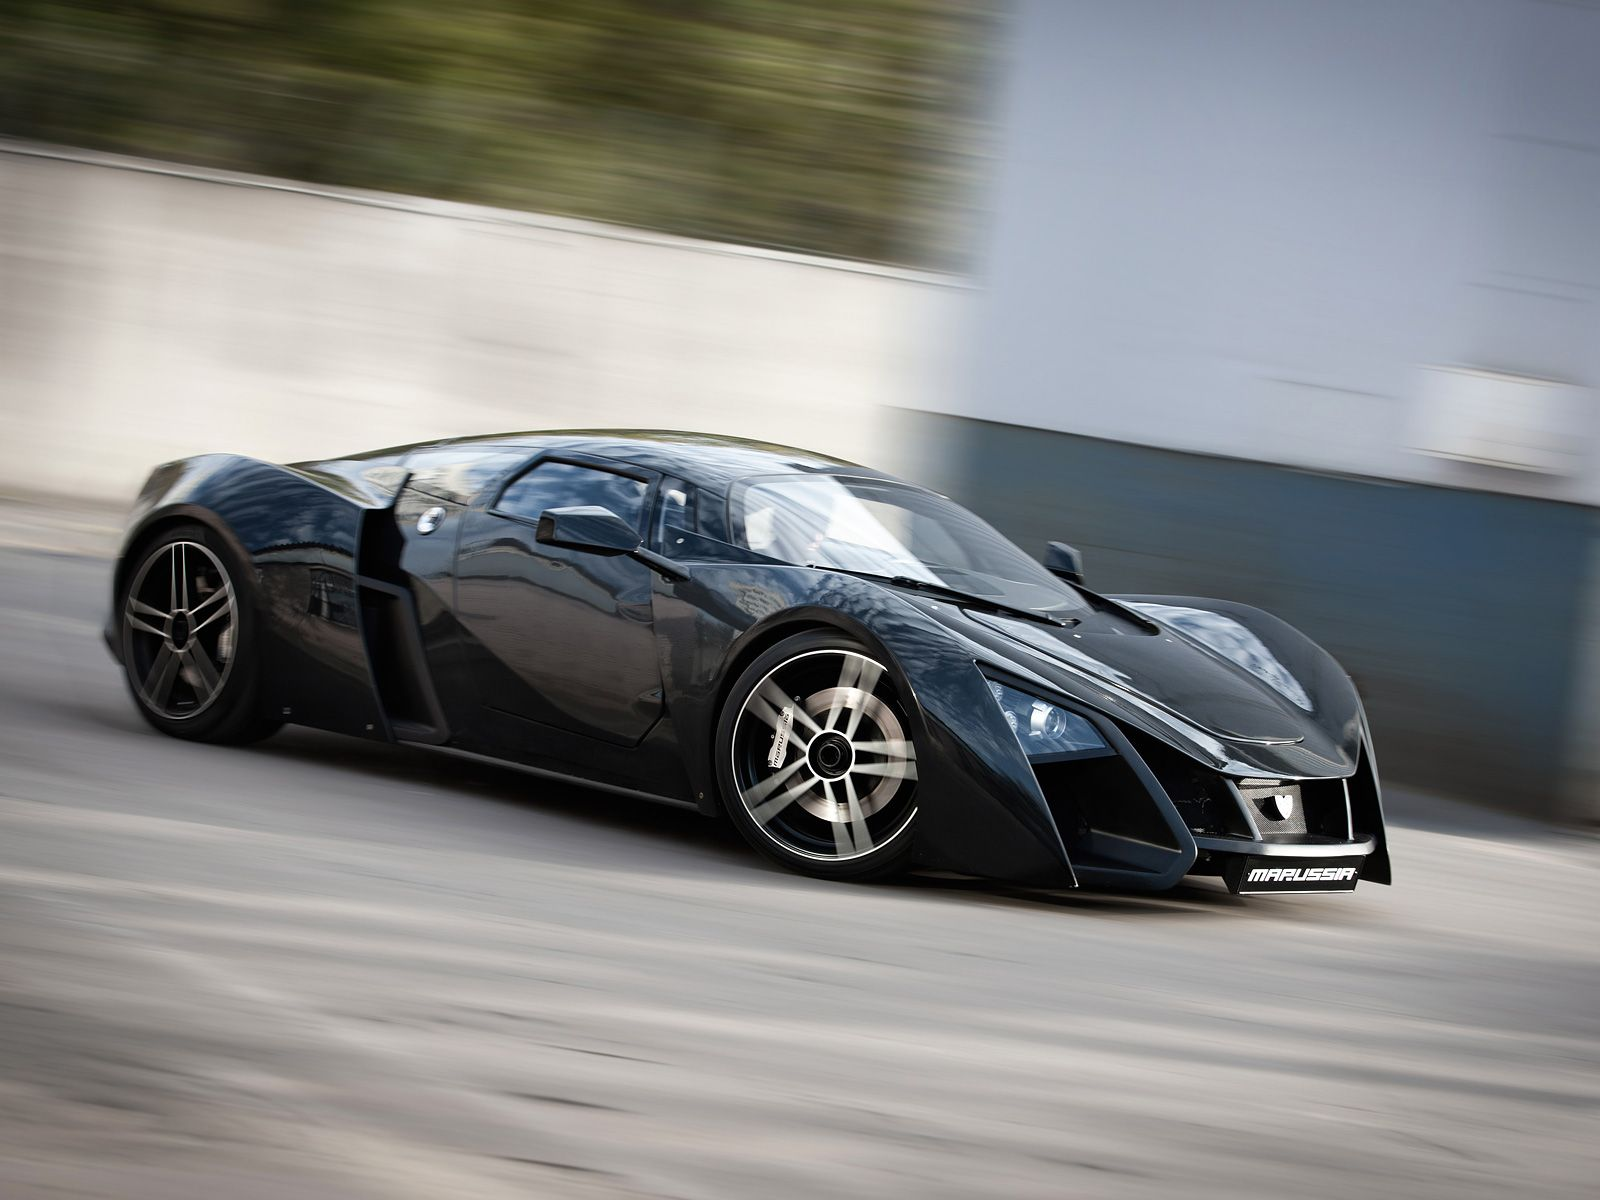 Marussia B2 2010 Side View Super Cars Supercars Wallpaper Cool Cars